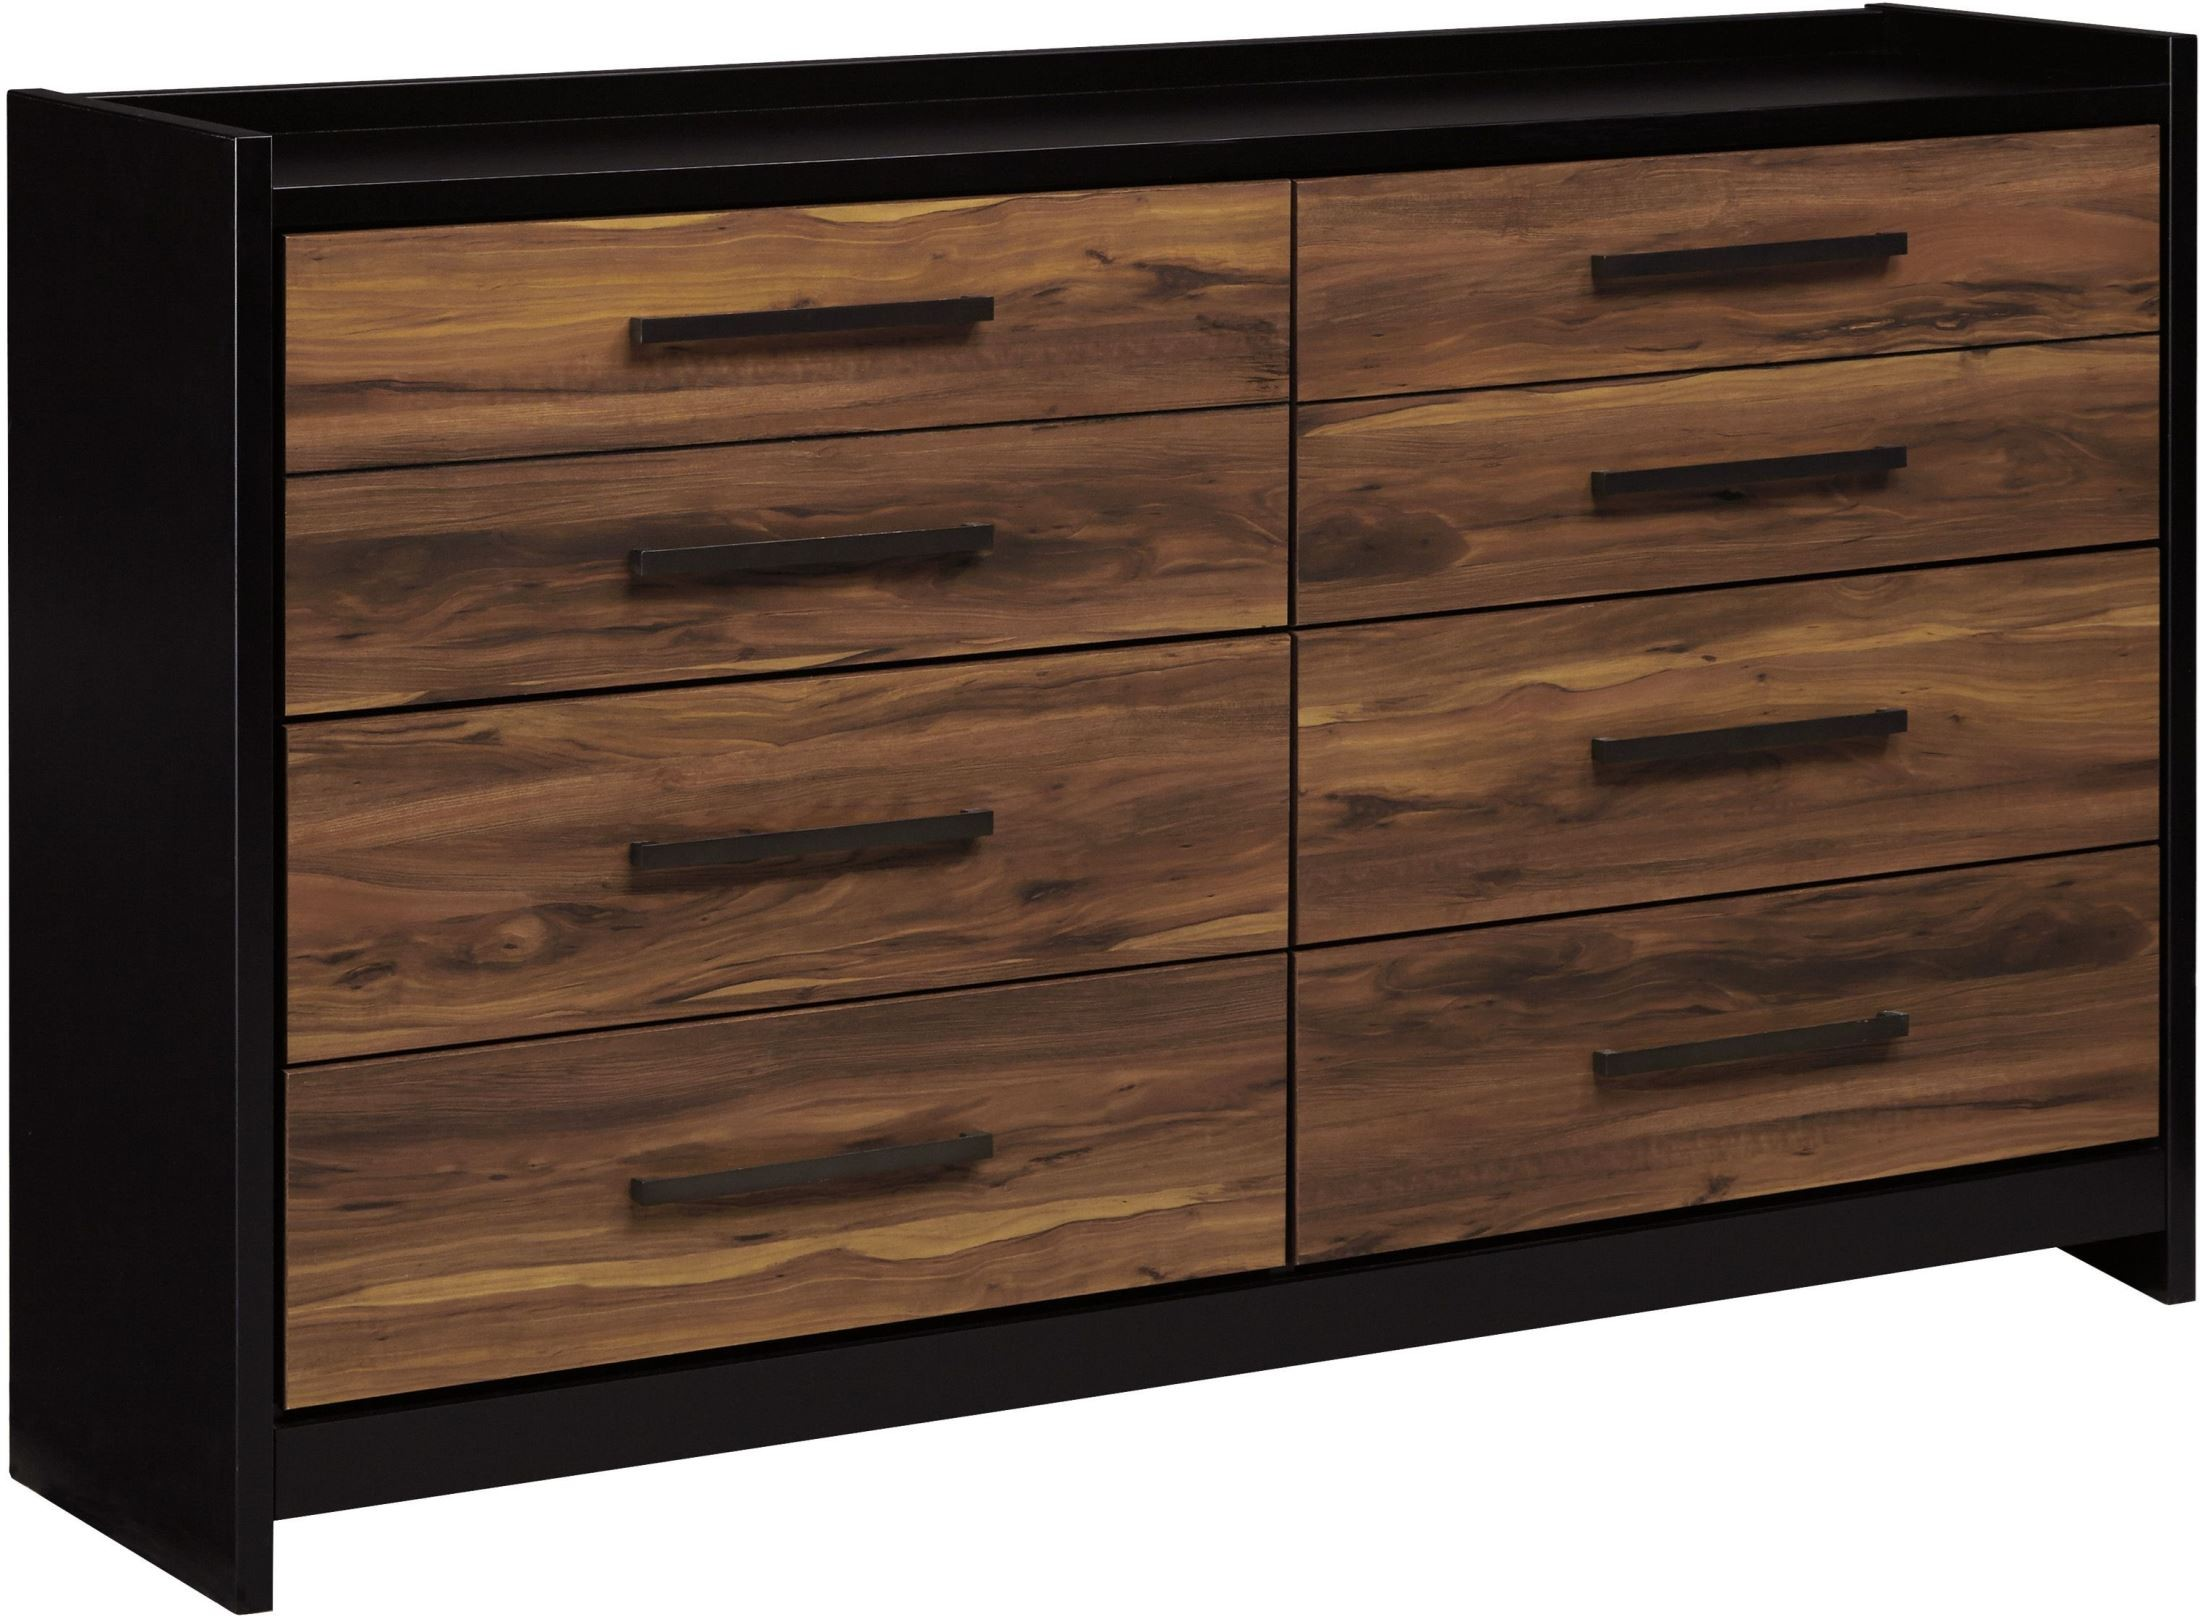 Stavani Black and Brown Dresser from Ashley